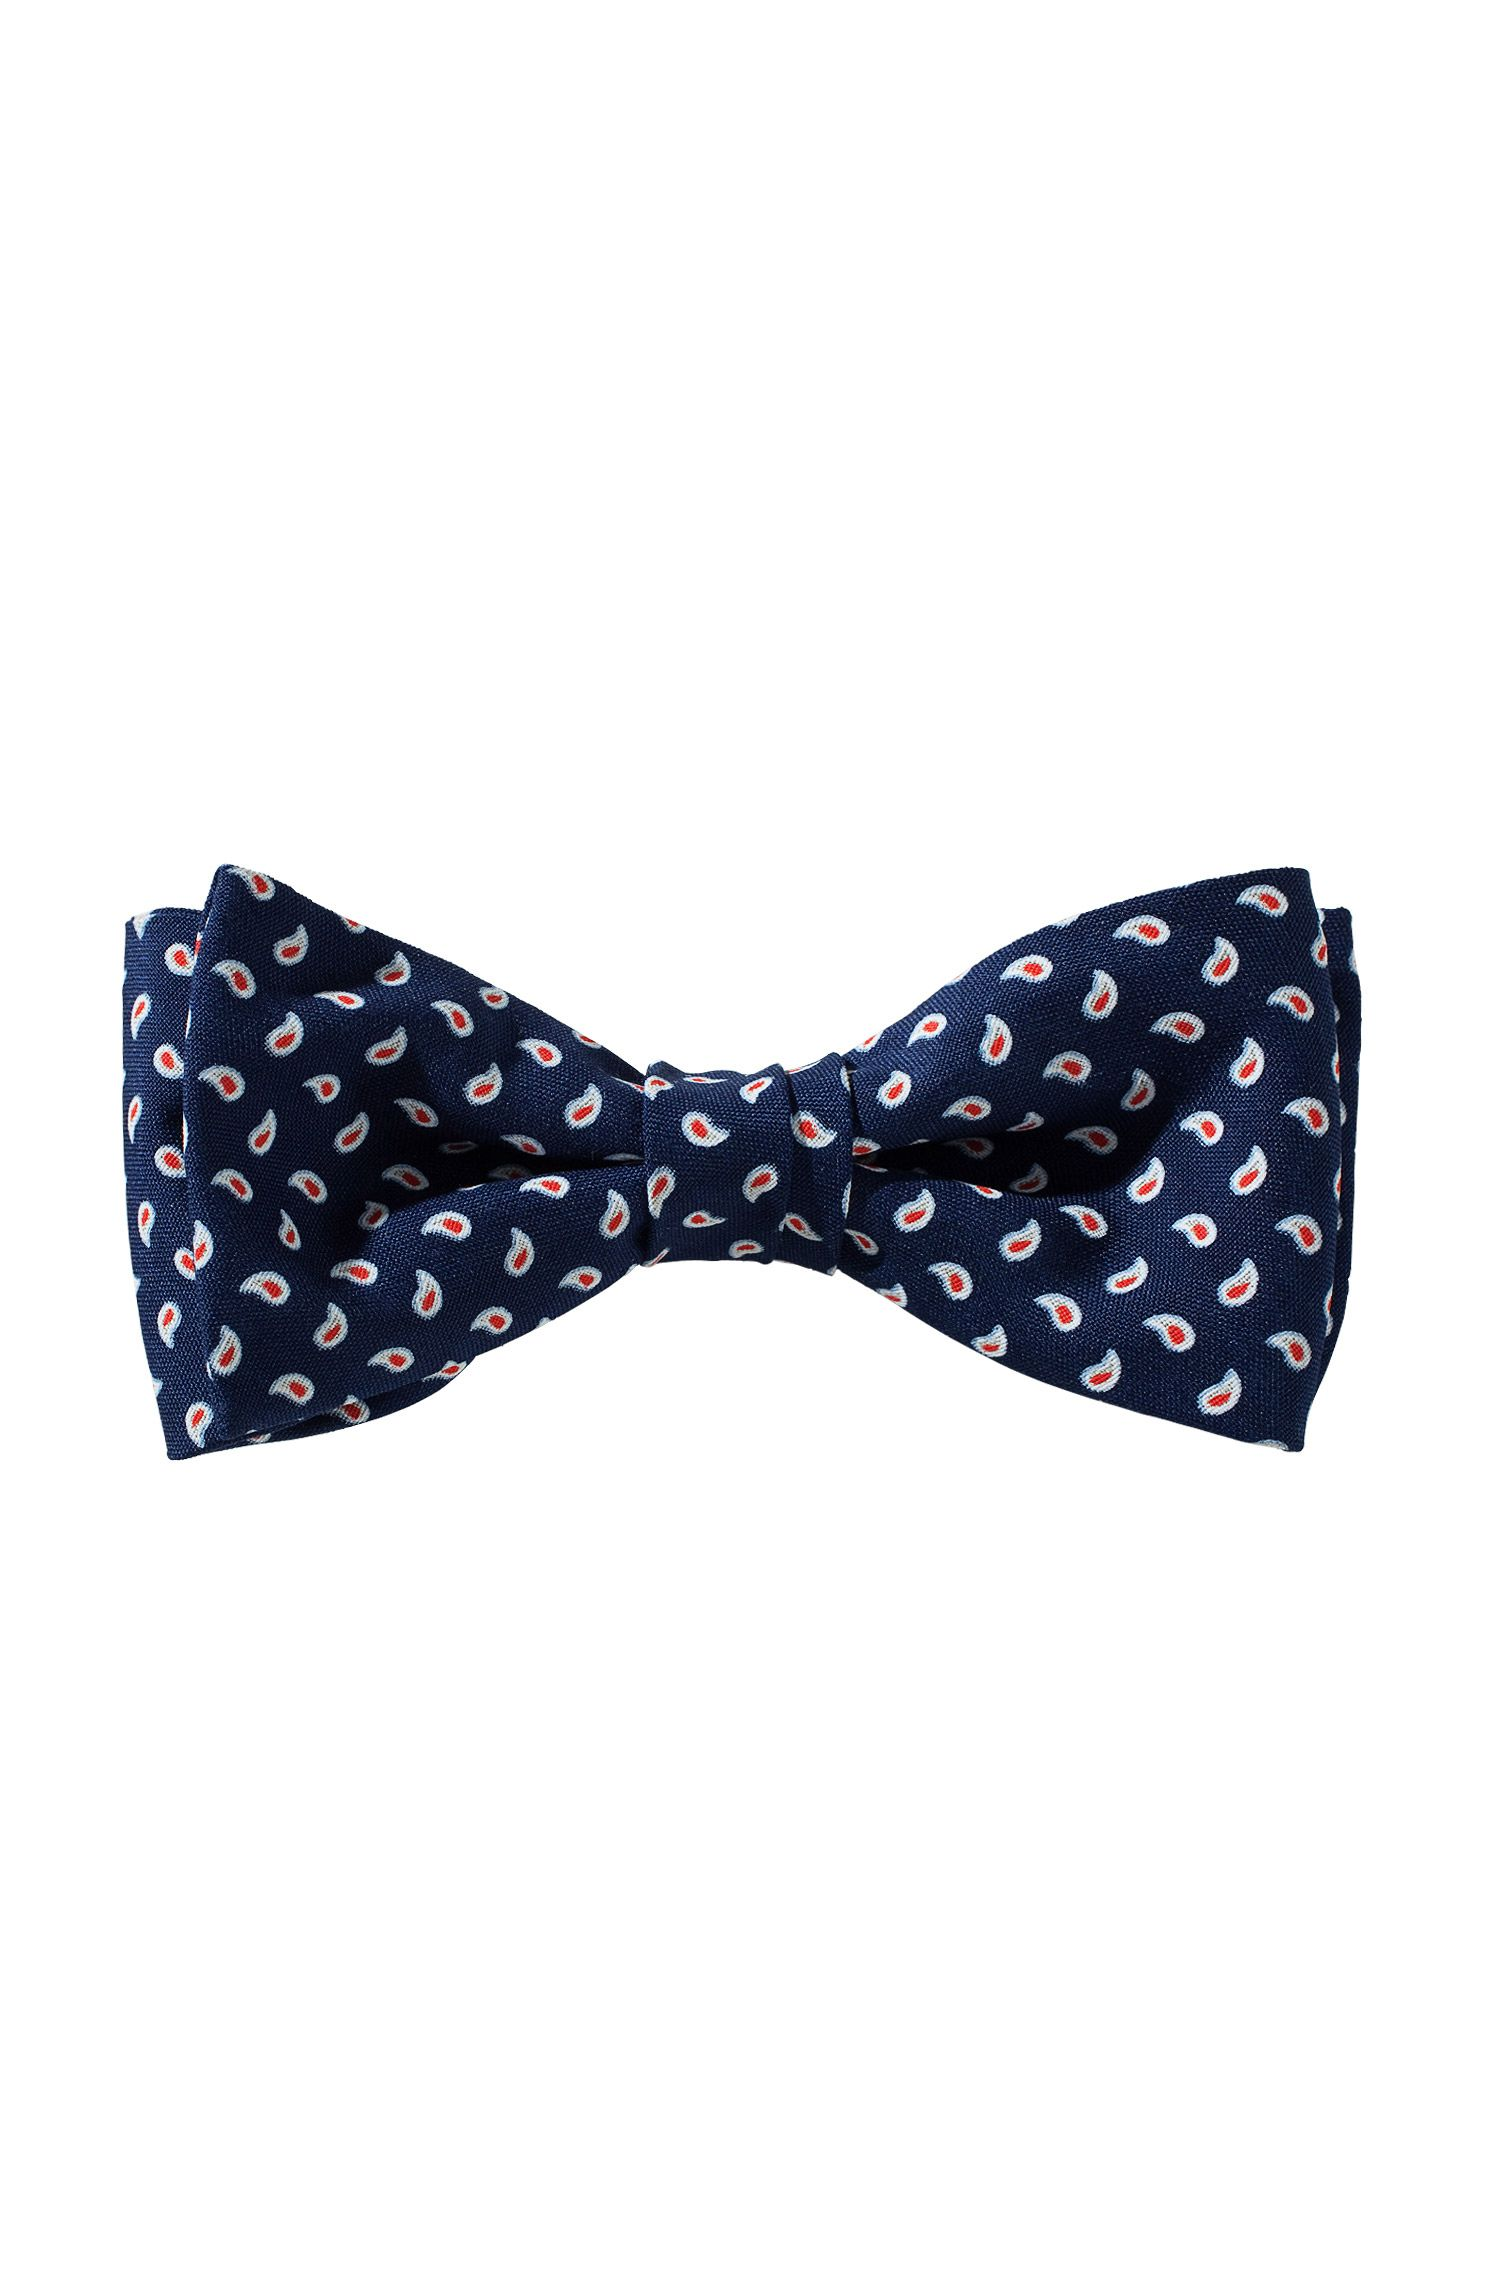 Fliege ´BOW TIE` mit Paisly-Muster